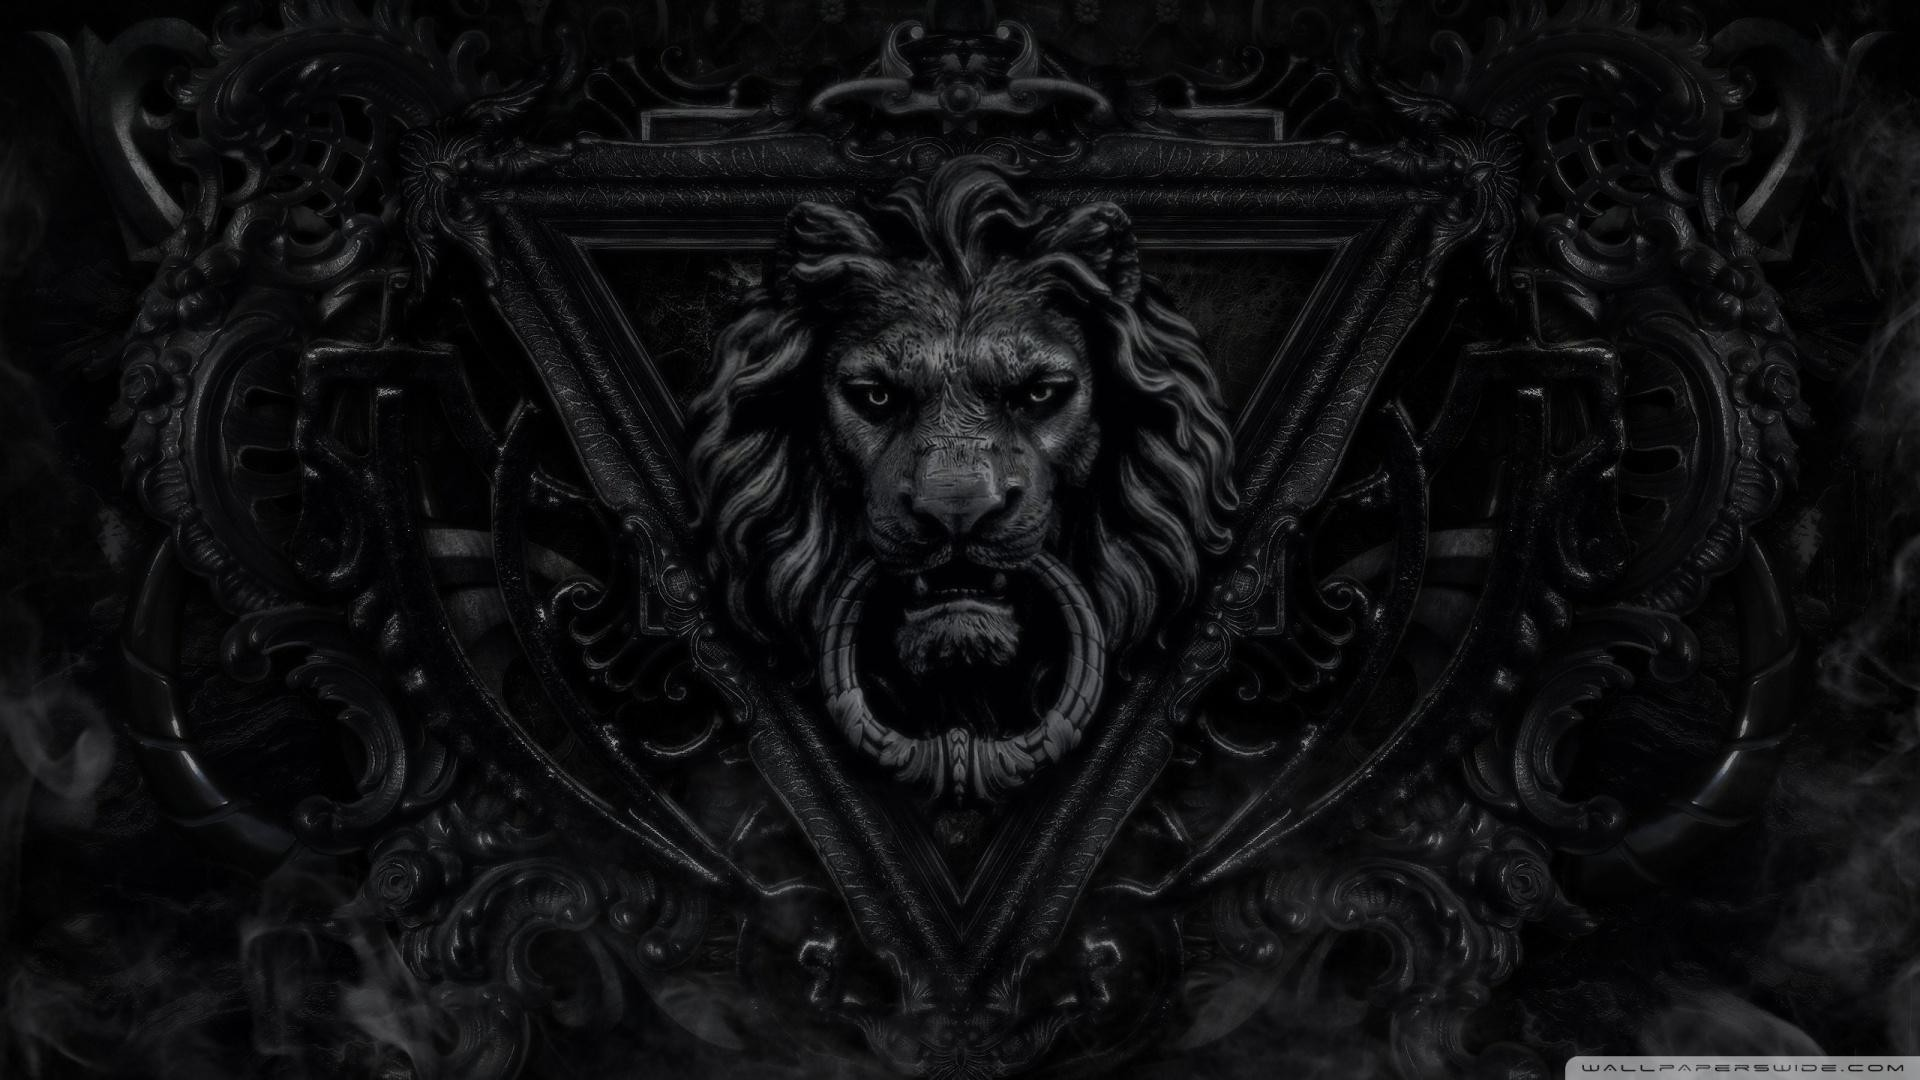 1920x1080 1600x900 Free Lion Black And White Wallpaper 1080p Â« Long Wallpapers